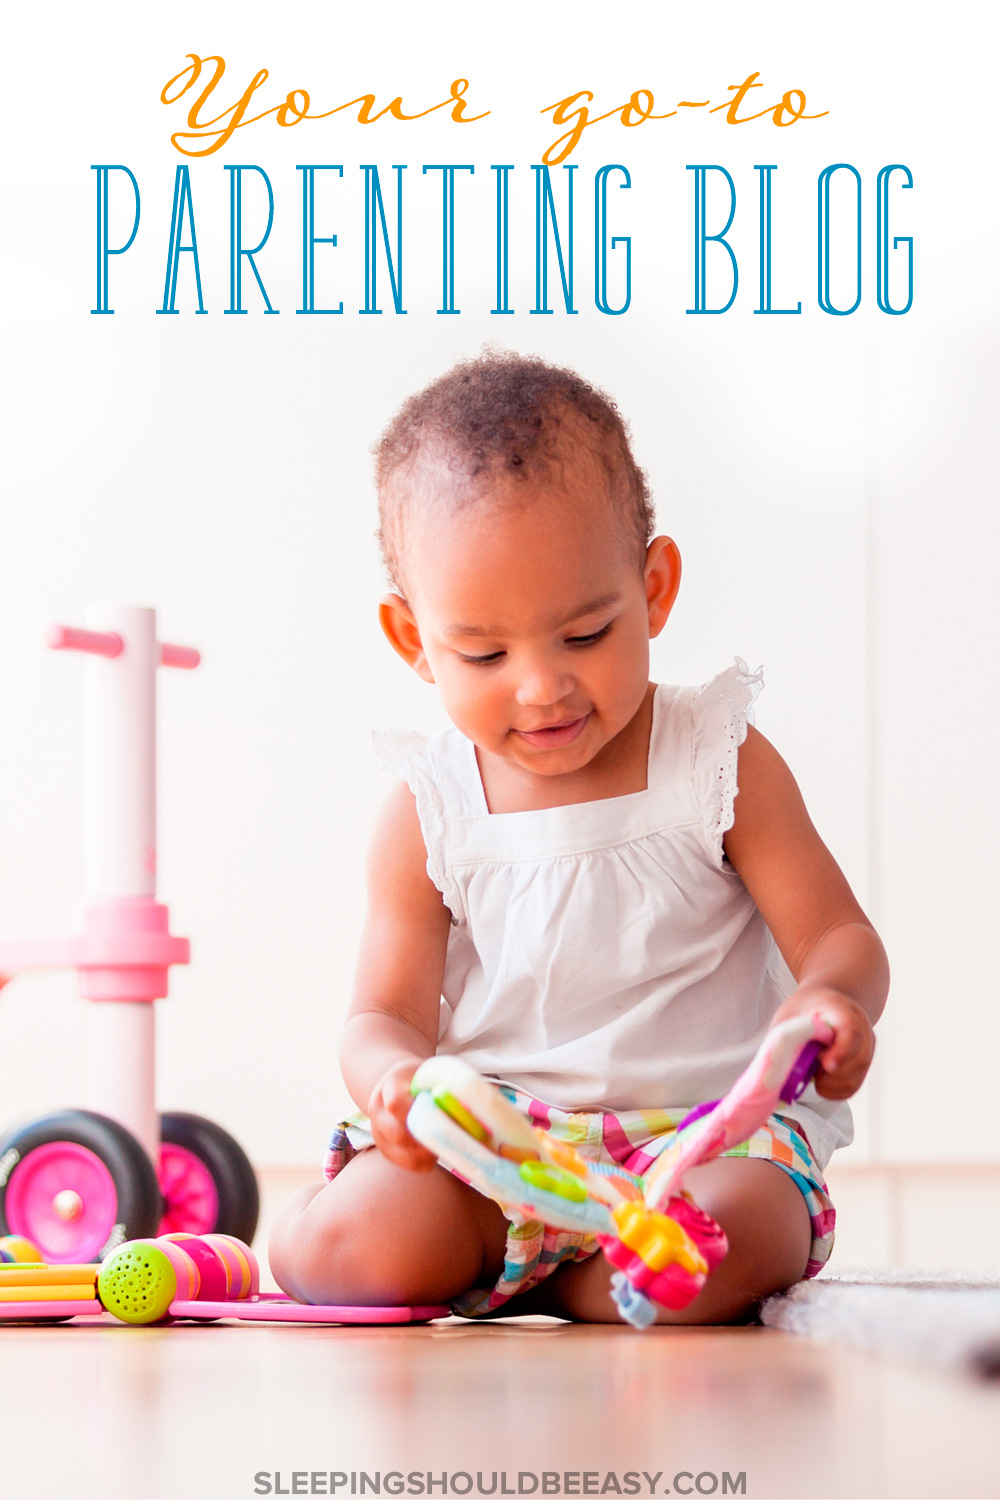 Welcome to Sleeping Should Be Easy! This blog caters to many aspects of parenthood, from the newborn days to helping your child learn to discipline. To help you navigate through the site, below are the pages I recommend you start with: